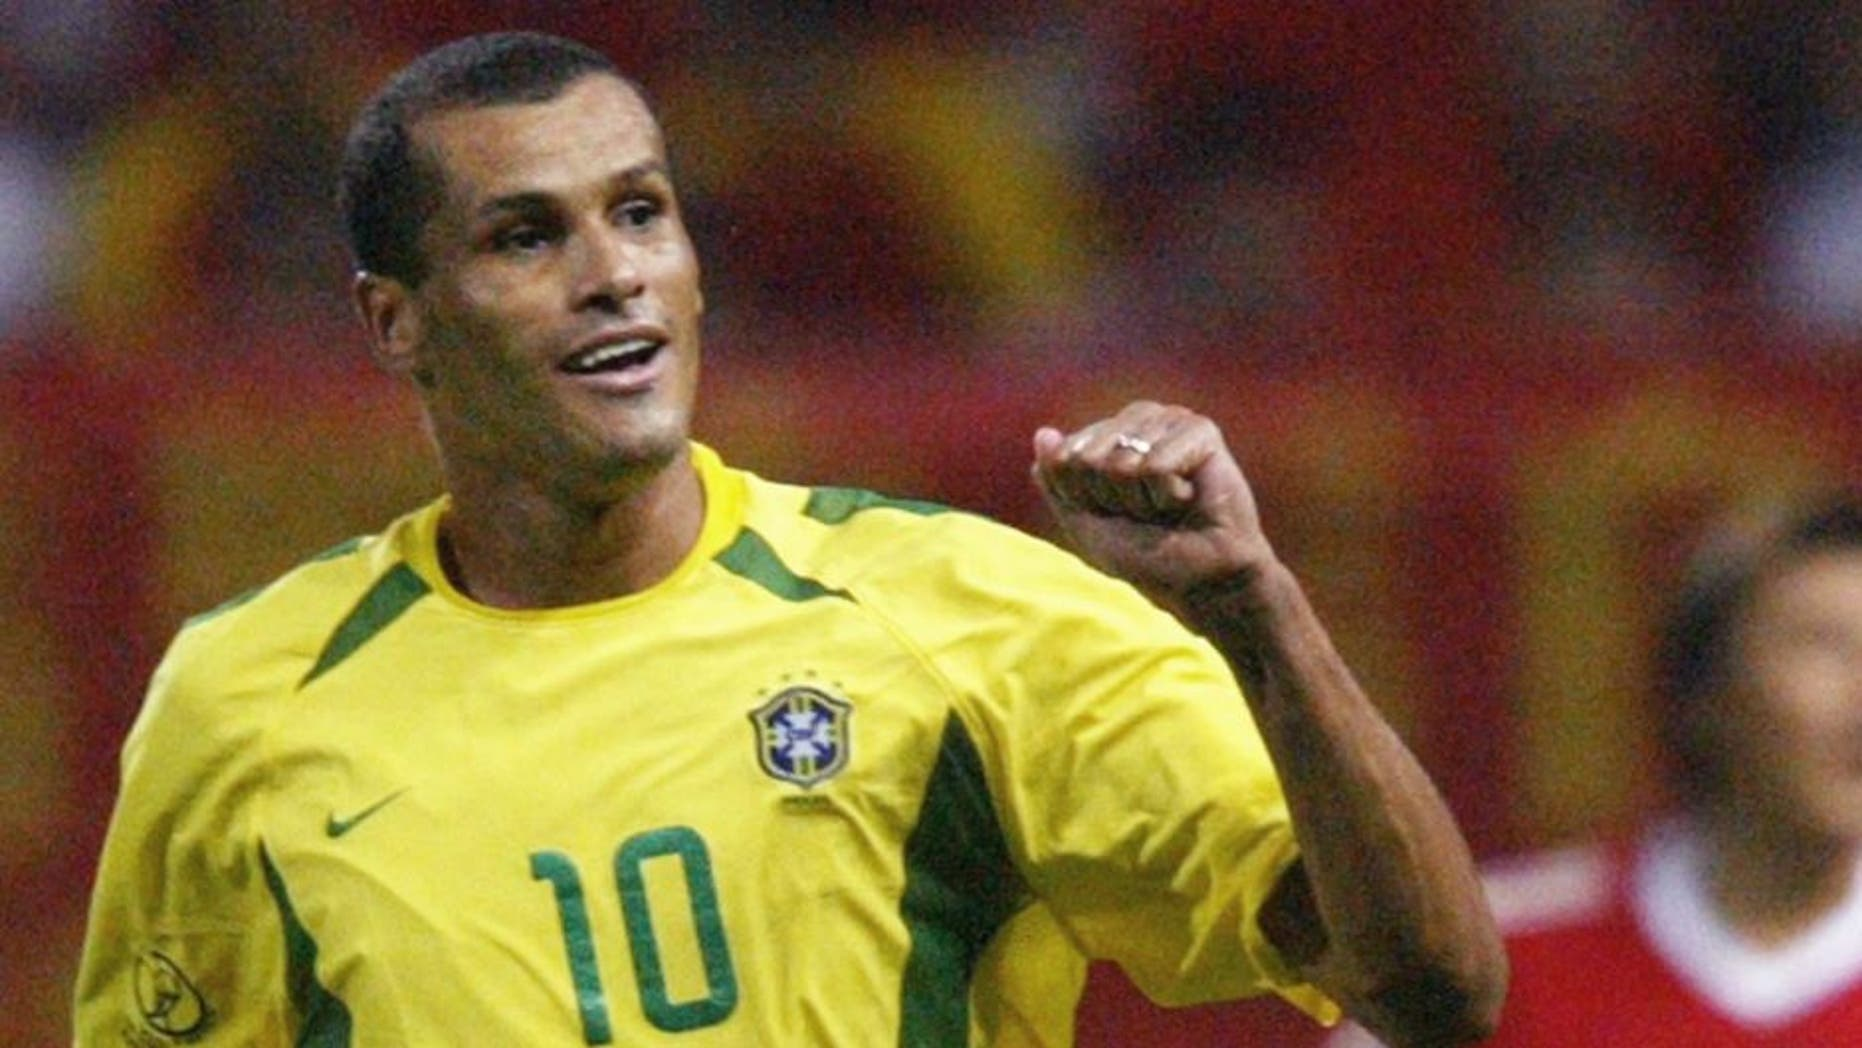 SEOGWIPO, REPUBLIC OF KOREA: Brazil's Rivaldo (L) celebrates after scoring in the 31st minute as China's Li Weifeng (R) looks on, 08 June 2002 at the Jeju World Cup Stadium in Seogwipo, during first round Group C action between Brazil and China in the 2002 FIFA World Cup Korea/Japan. AFP PHOTO/ANTONIO SCORZA (Photo credit should read ANTONIO SCORZA/AFP/Getty Images)